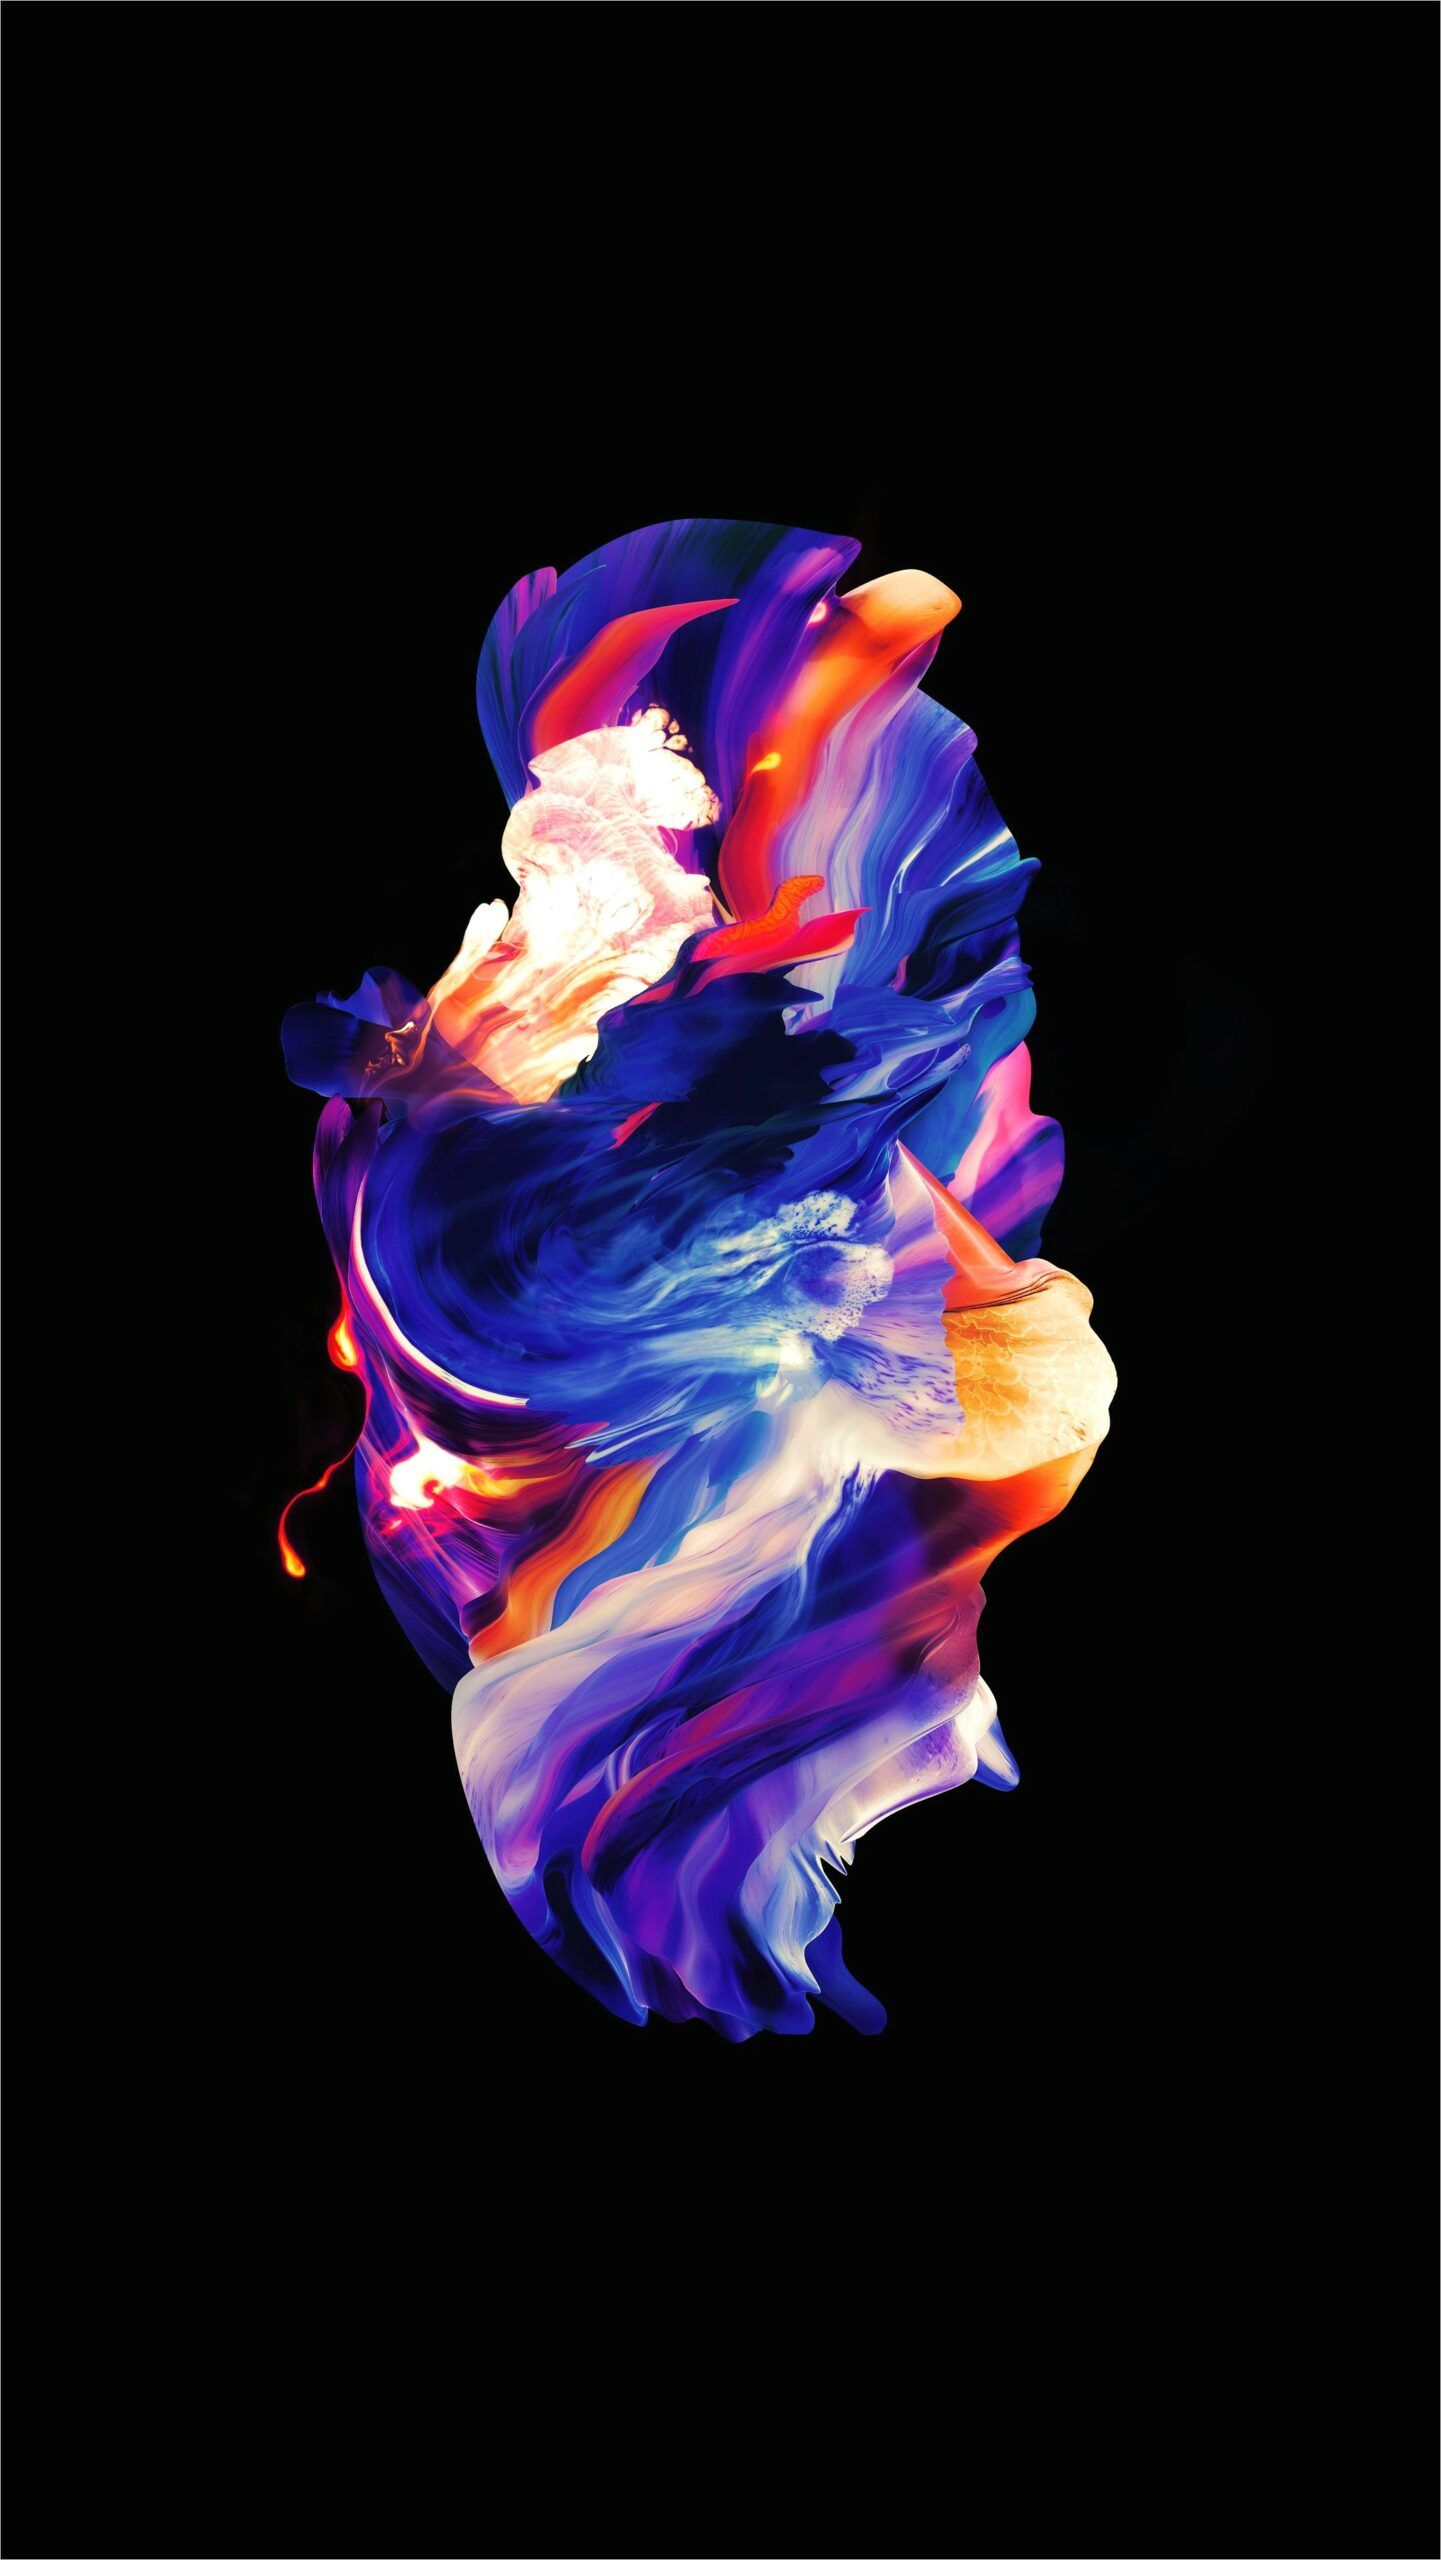 4k Amoled Wallpaper For Mobile In 2020 Oneplus Wallpapers Minimalist Wallpaper Abstract Iphone Wallpaper